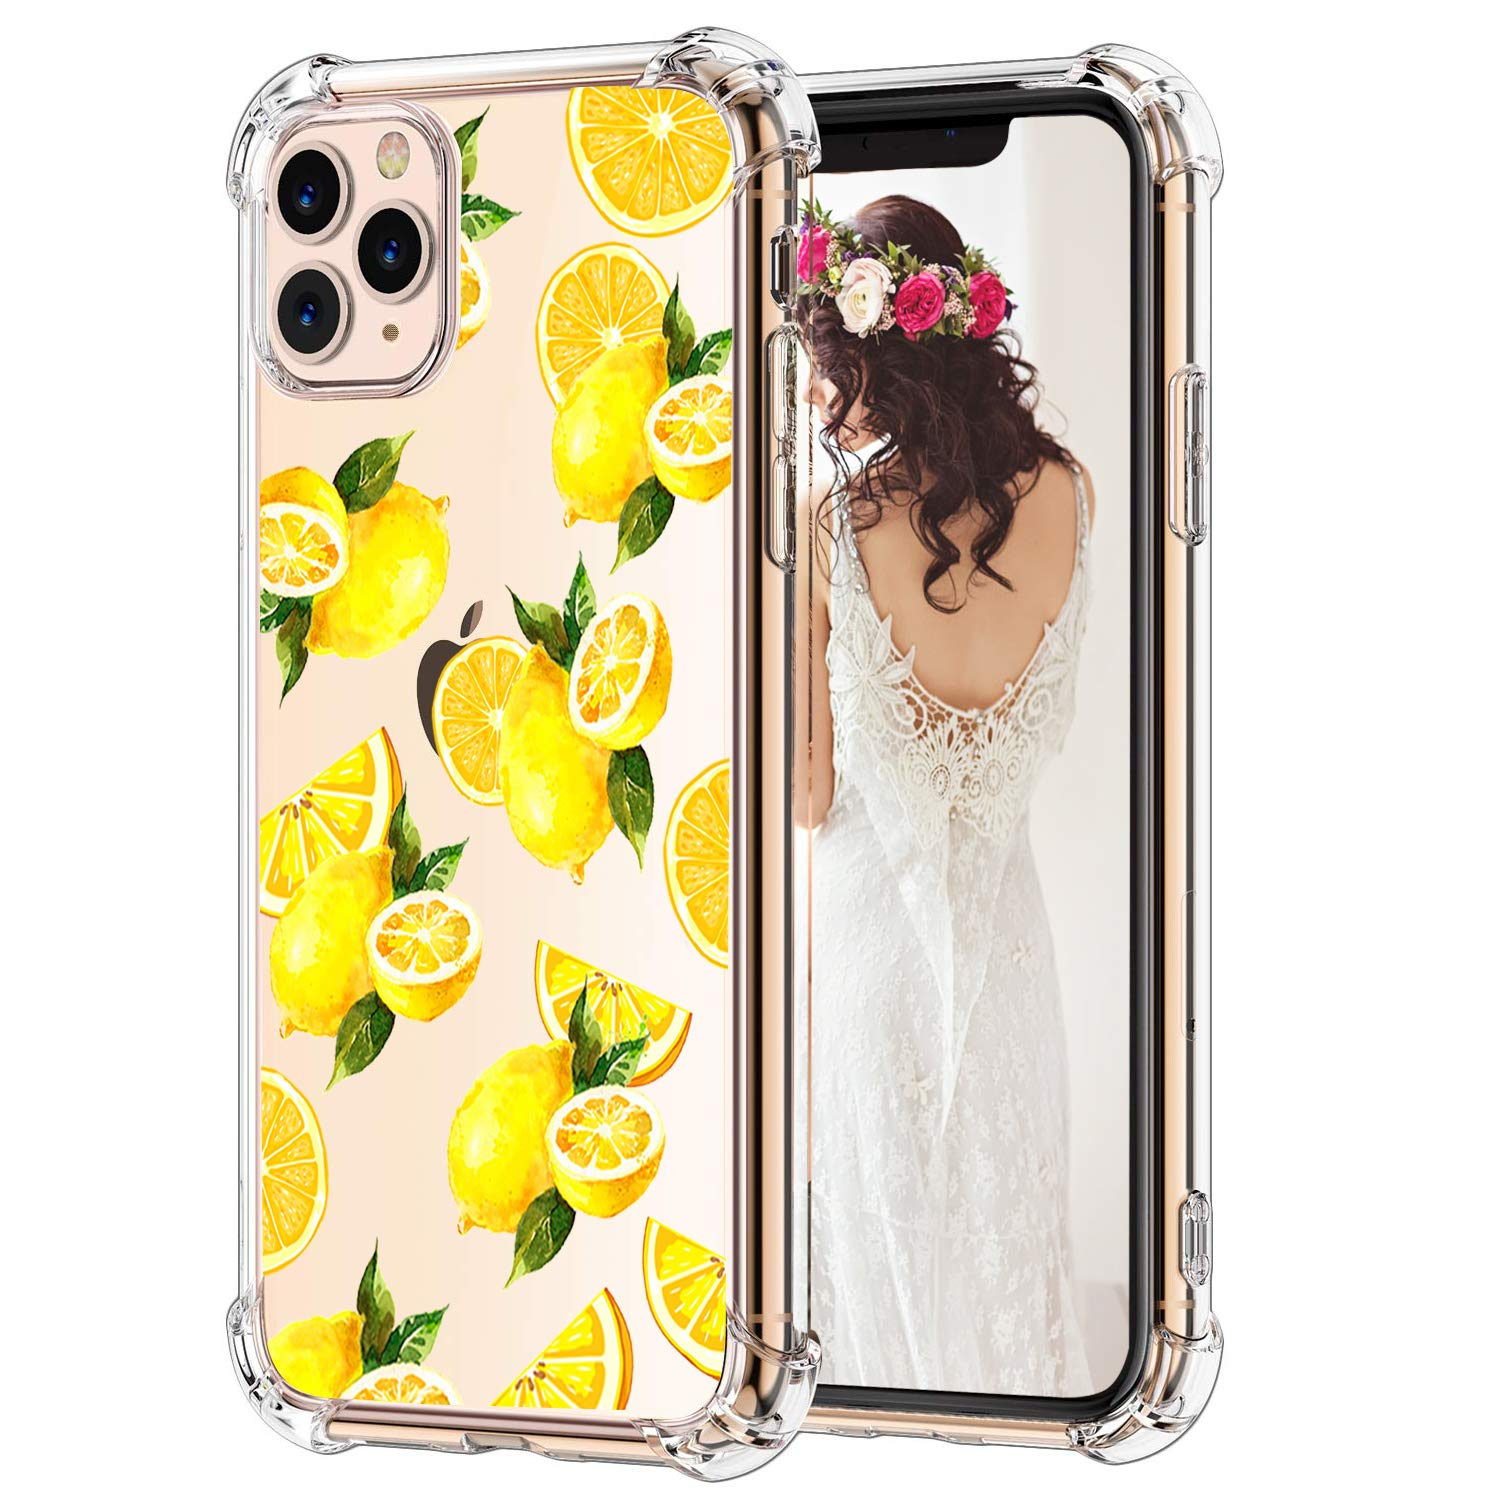 Hepix Fresh Lemon iPhone 11 Pro Max Cases, Cute Yellow Lemon Clear Pro Max 11 Cases, Soft Flexiable TPU Slim Protective Phone Cover with Four Air Cushion Corners Anti-Scratch Shock Absorbing